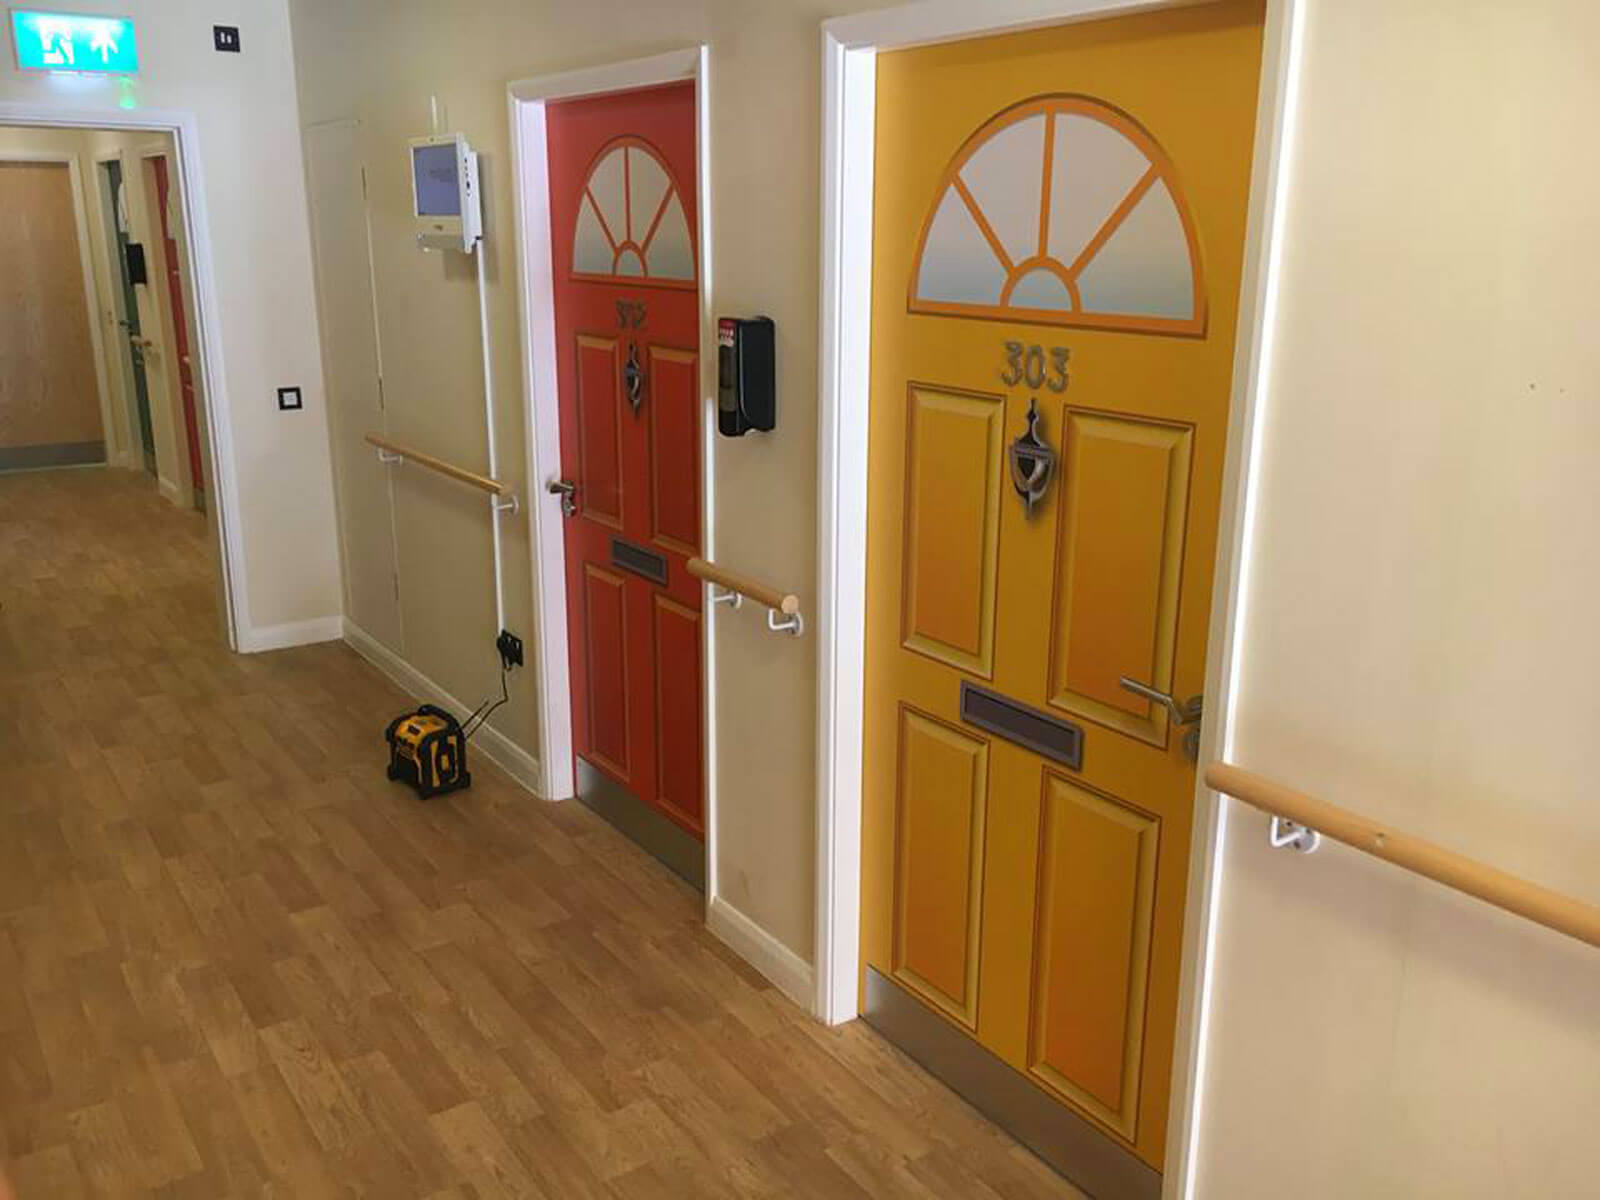 Dementia friendly door wraps for care homes and hospitals